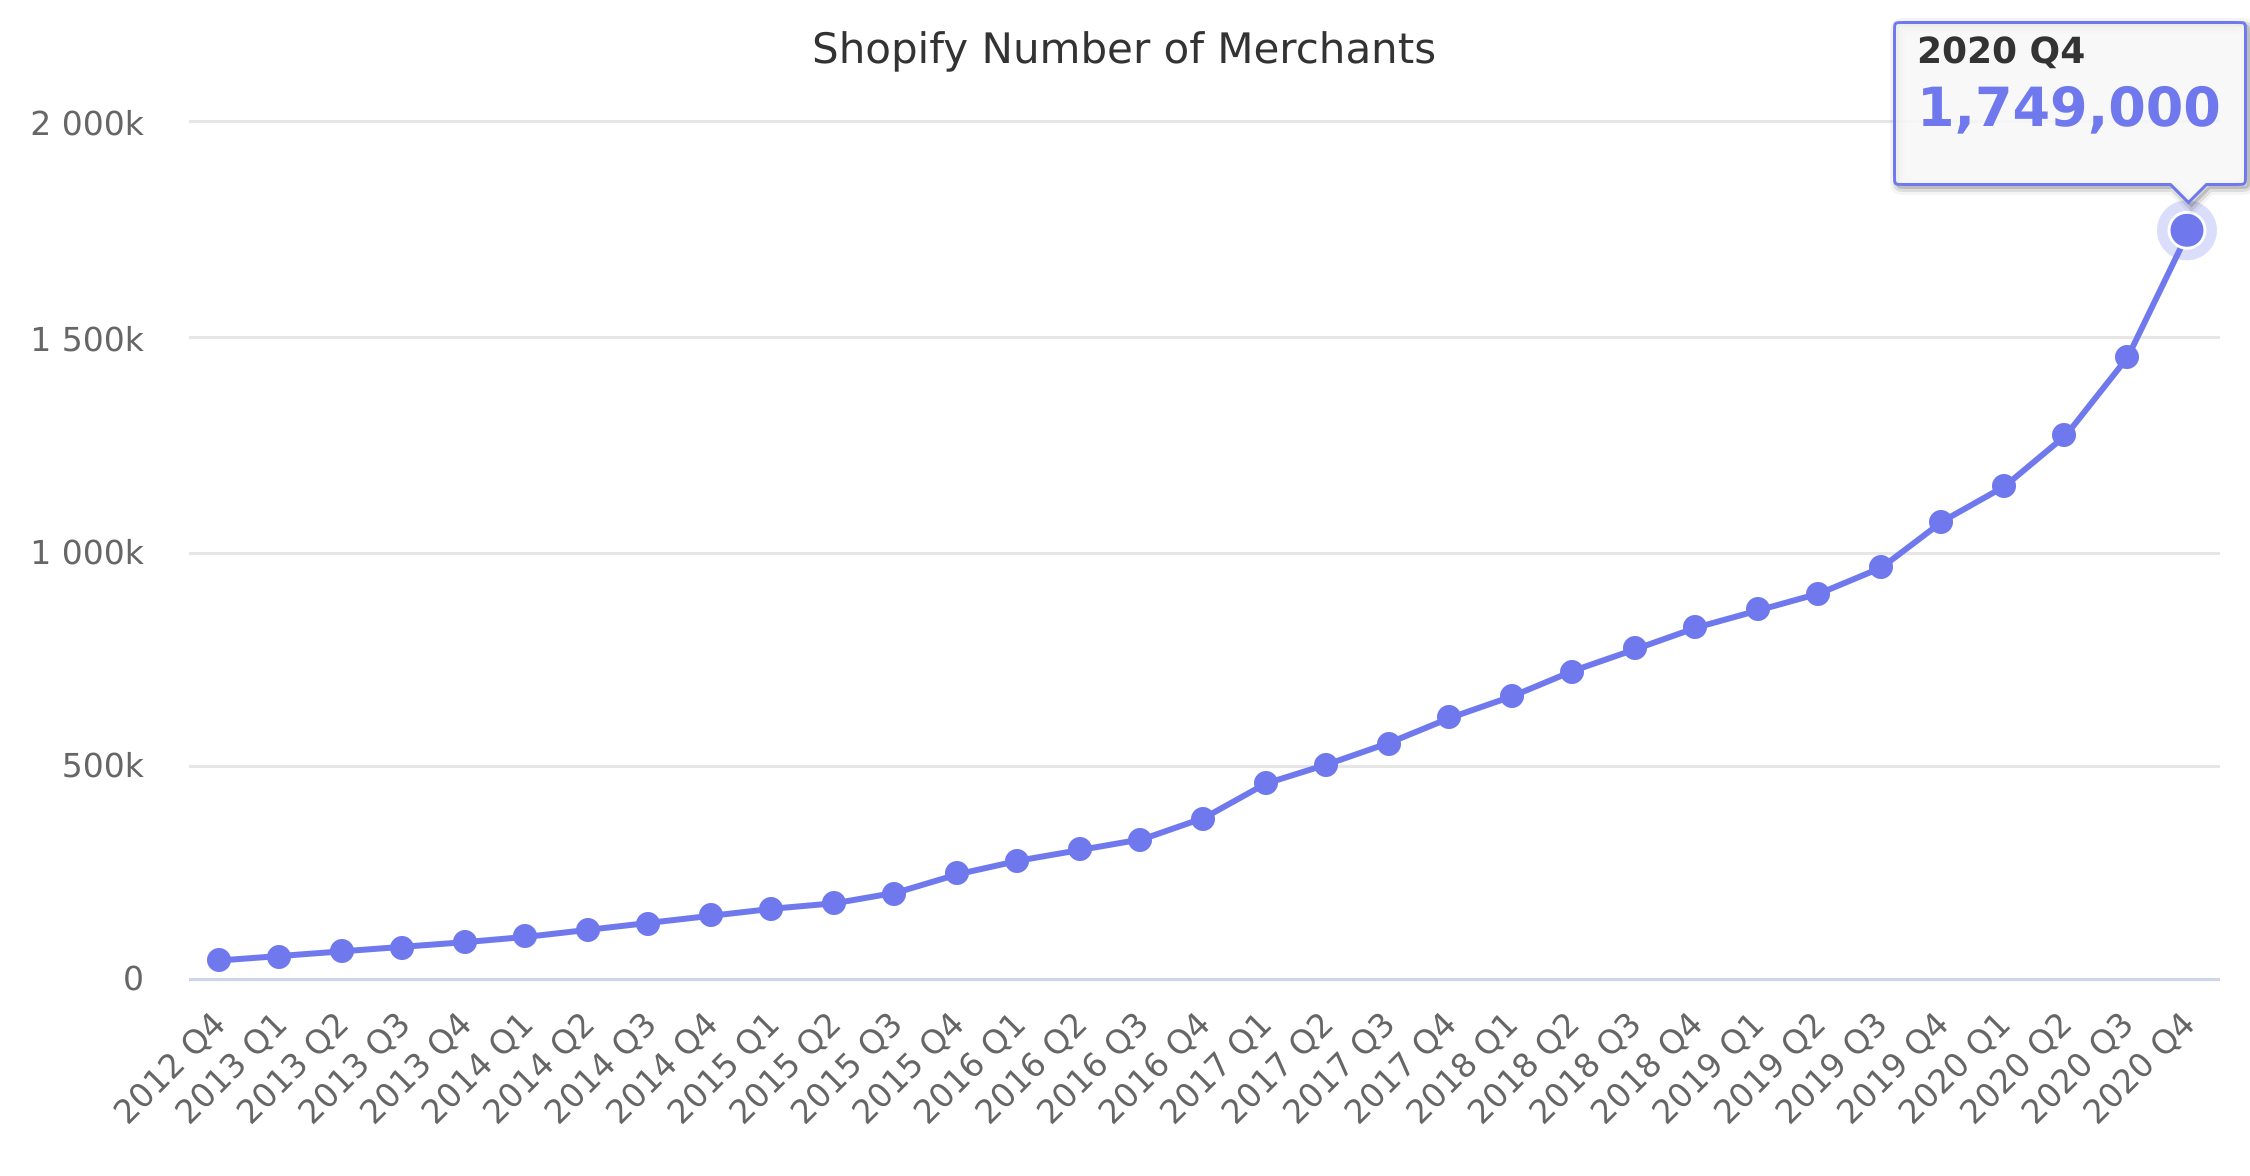 Shopify Number of Merchants